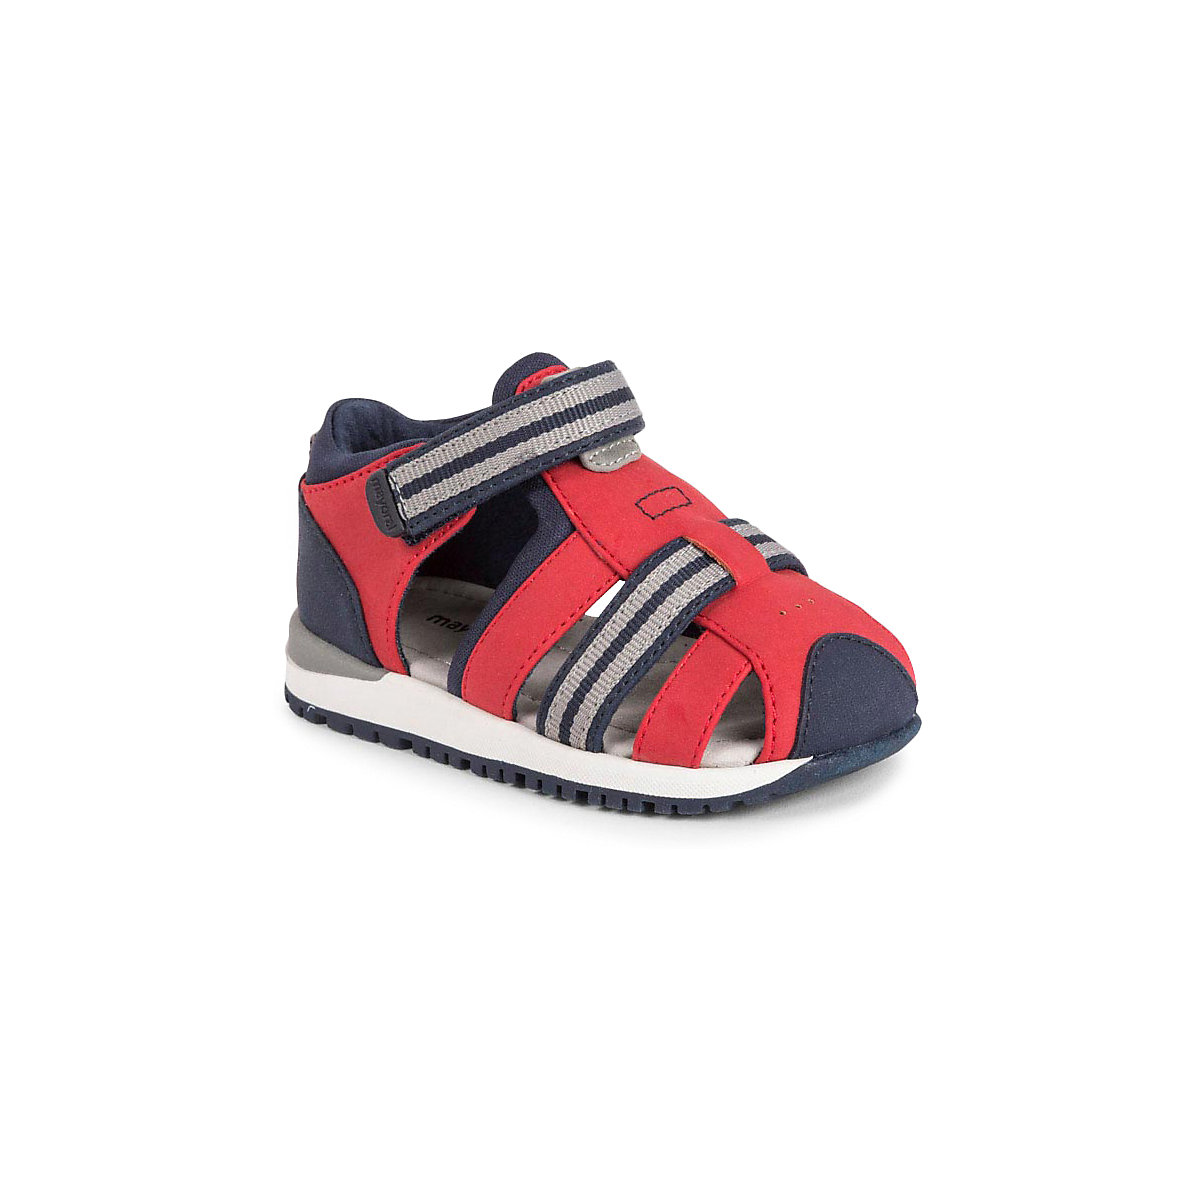 MAYORAL Sandals 10644210 children's shoes comfortable and light girls and boys sandals adidas af3921 sports and entertainment for boys